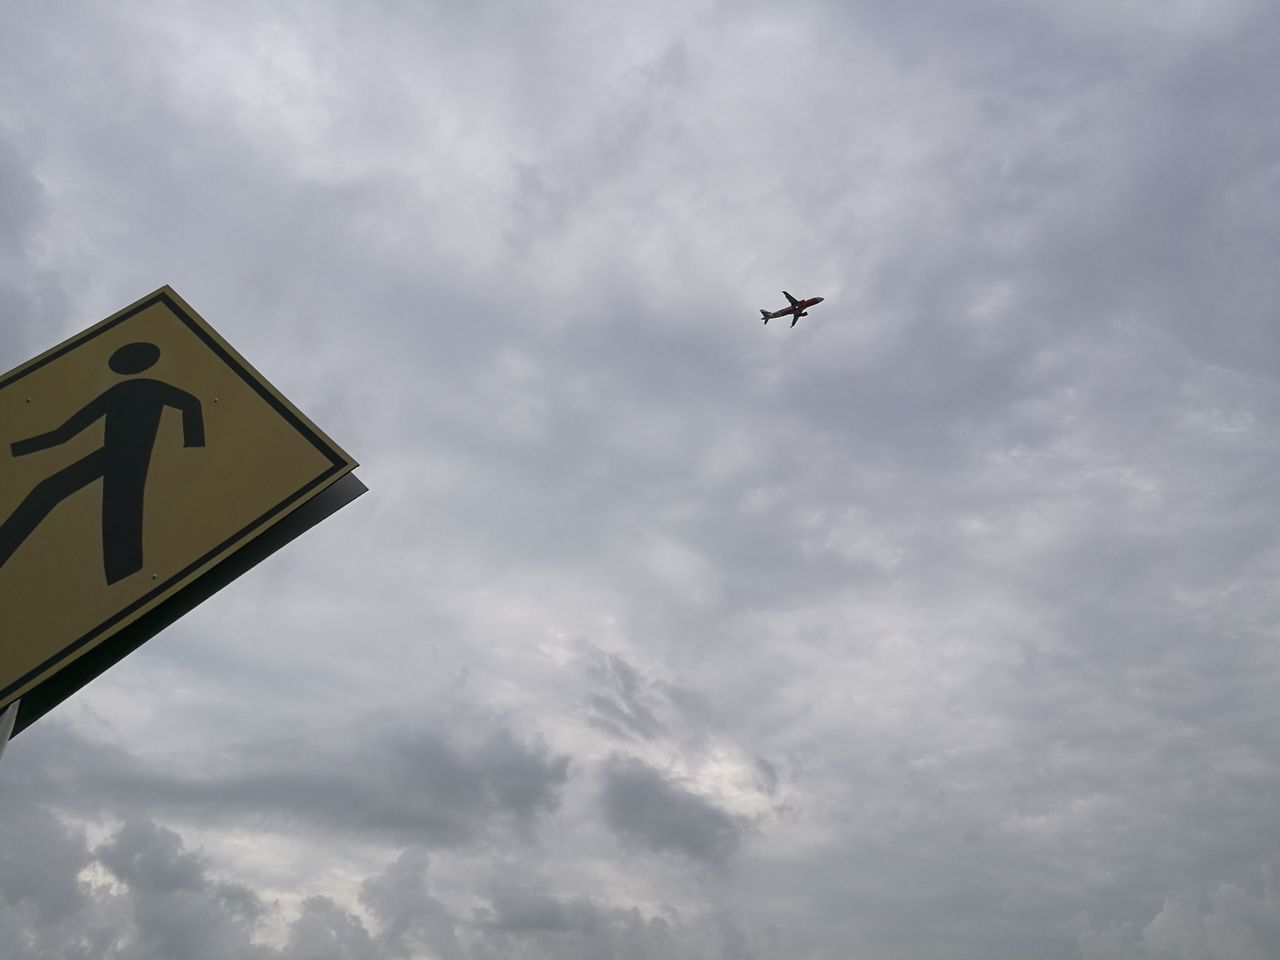 Crossover Adapted To The City Aeroplane Blue Sky Clouds And Sky Crossing Diamond Hanging Out Huawei P9 Leica Imagination Landscape Lieblingsteil Nature One Person Outdoors Park Photography Signboard Small Yellow